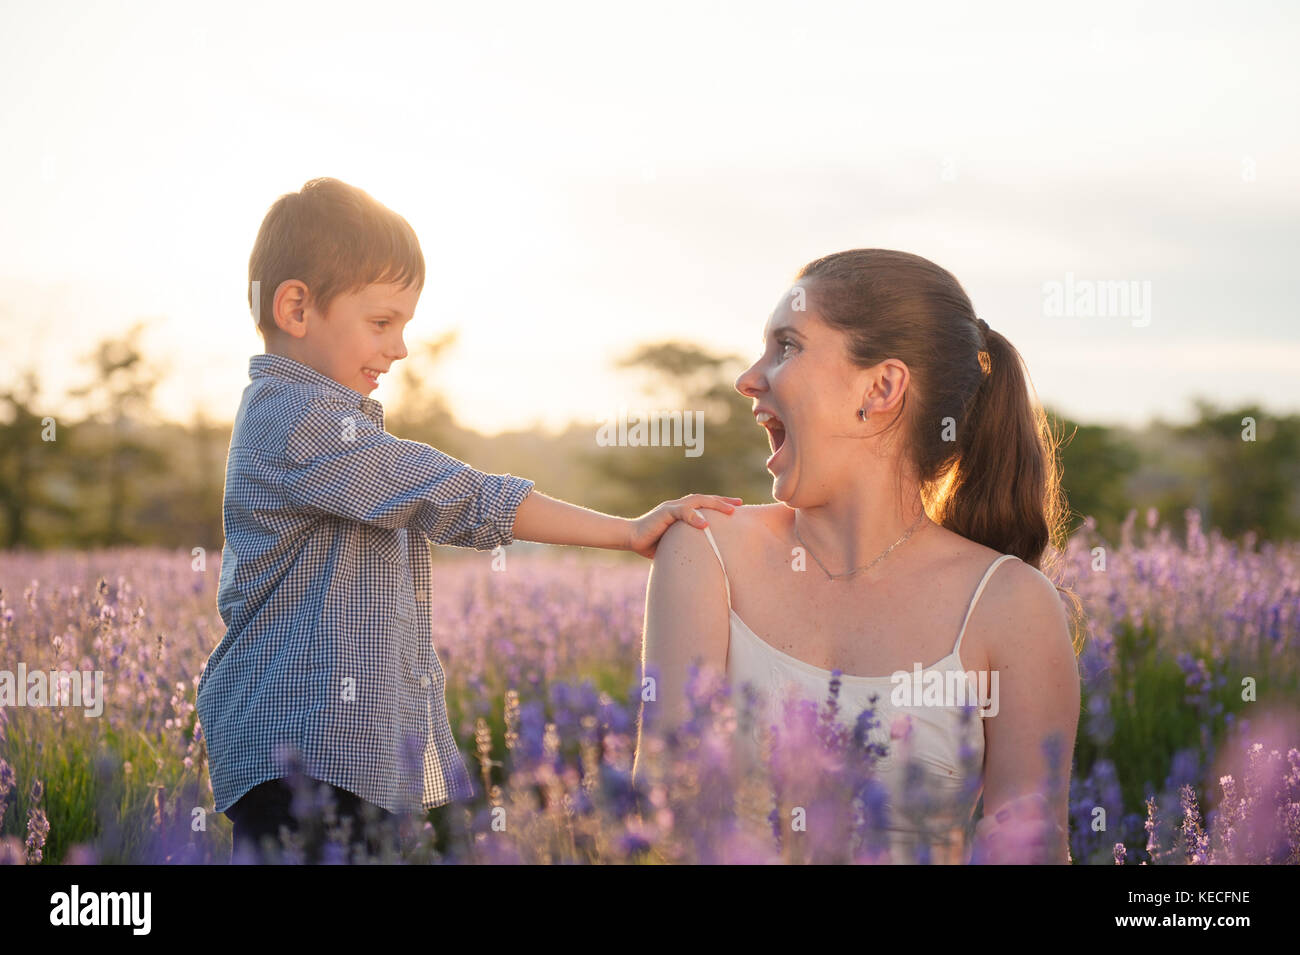 Emotional beautiful mother and her son touching her shoulder with tenderness on the purple lavender field at warm - Stock Image